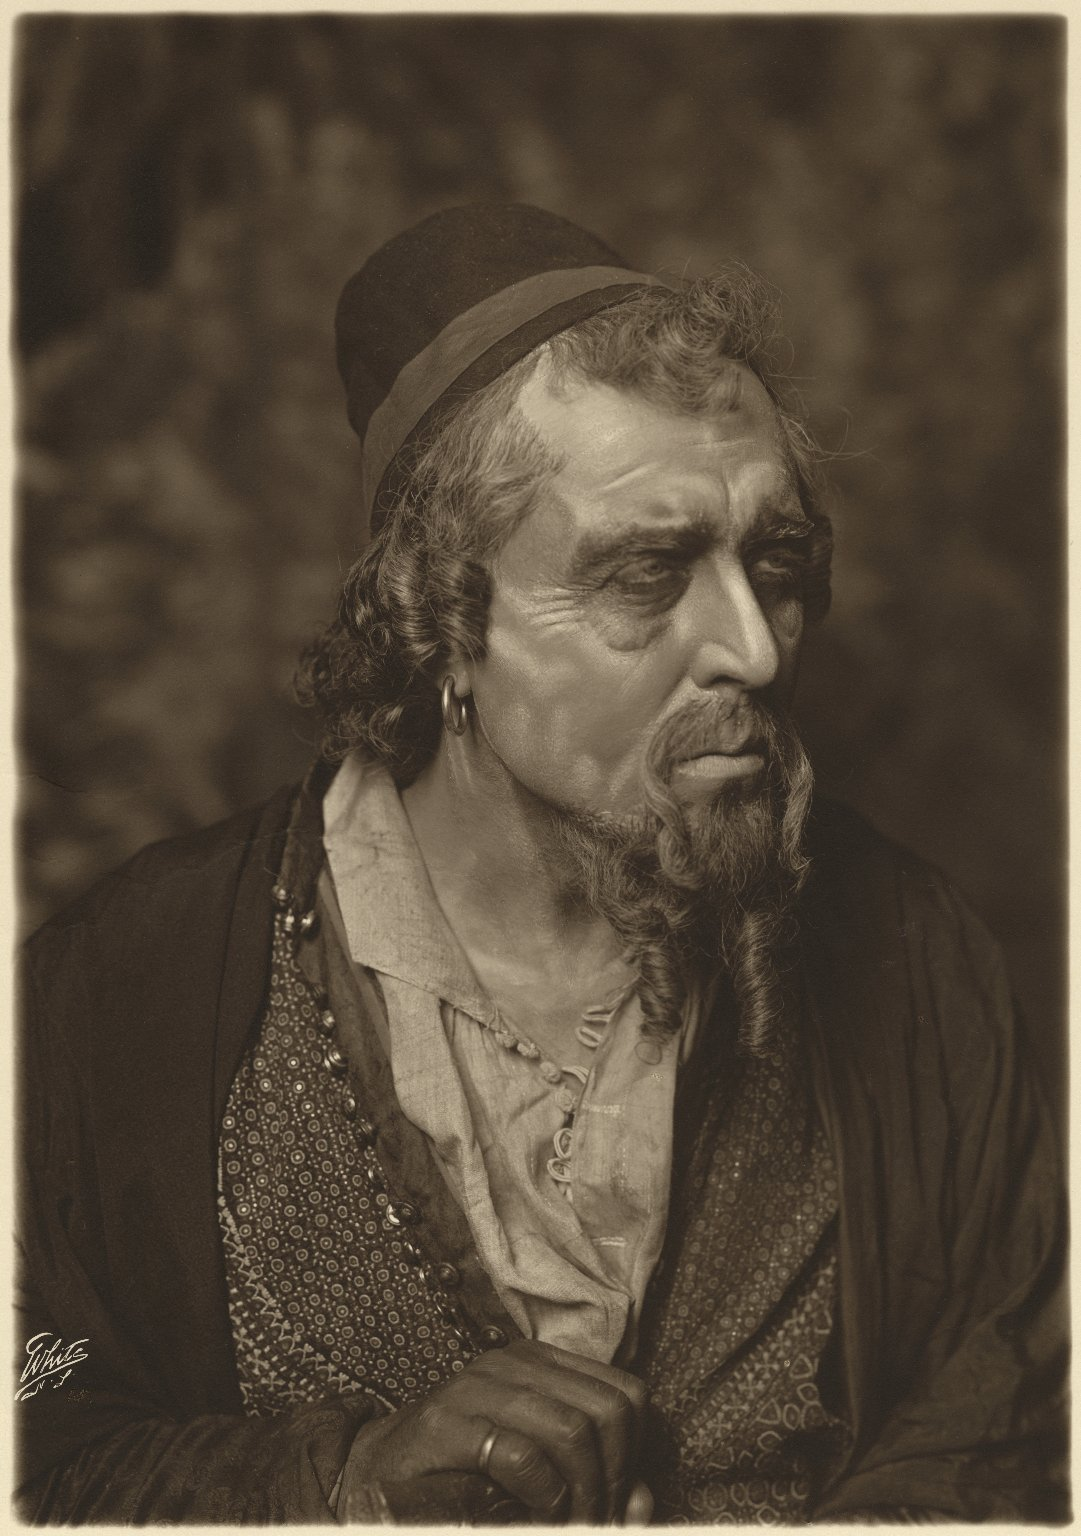 [E.H. Sothern as] Shylock [in Shakespeare's Merchant of Venice] [graphic] / White.